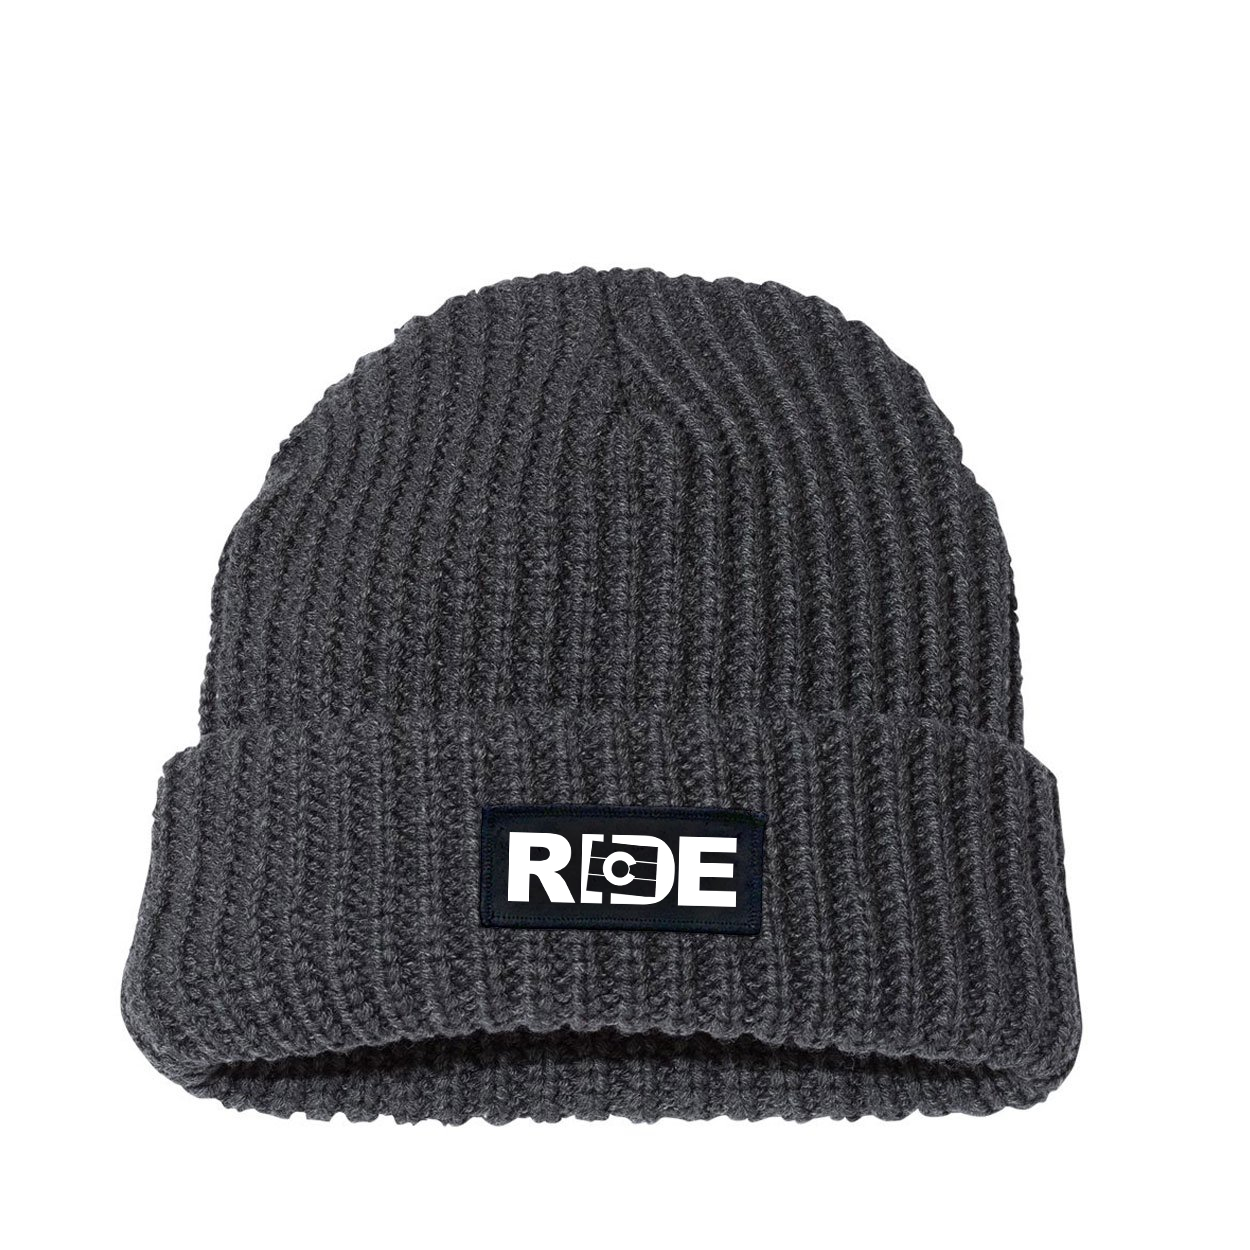 Ride Colorado Night Out Woven Patch Roll Up Jumbo Chunky Knit Beanie Charcoal (White Logo)